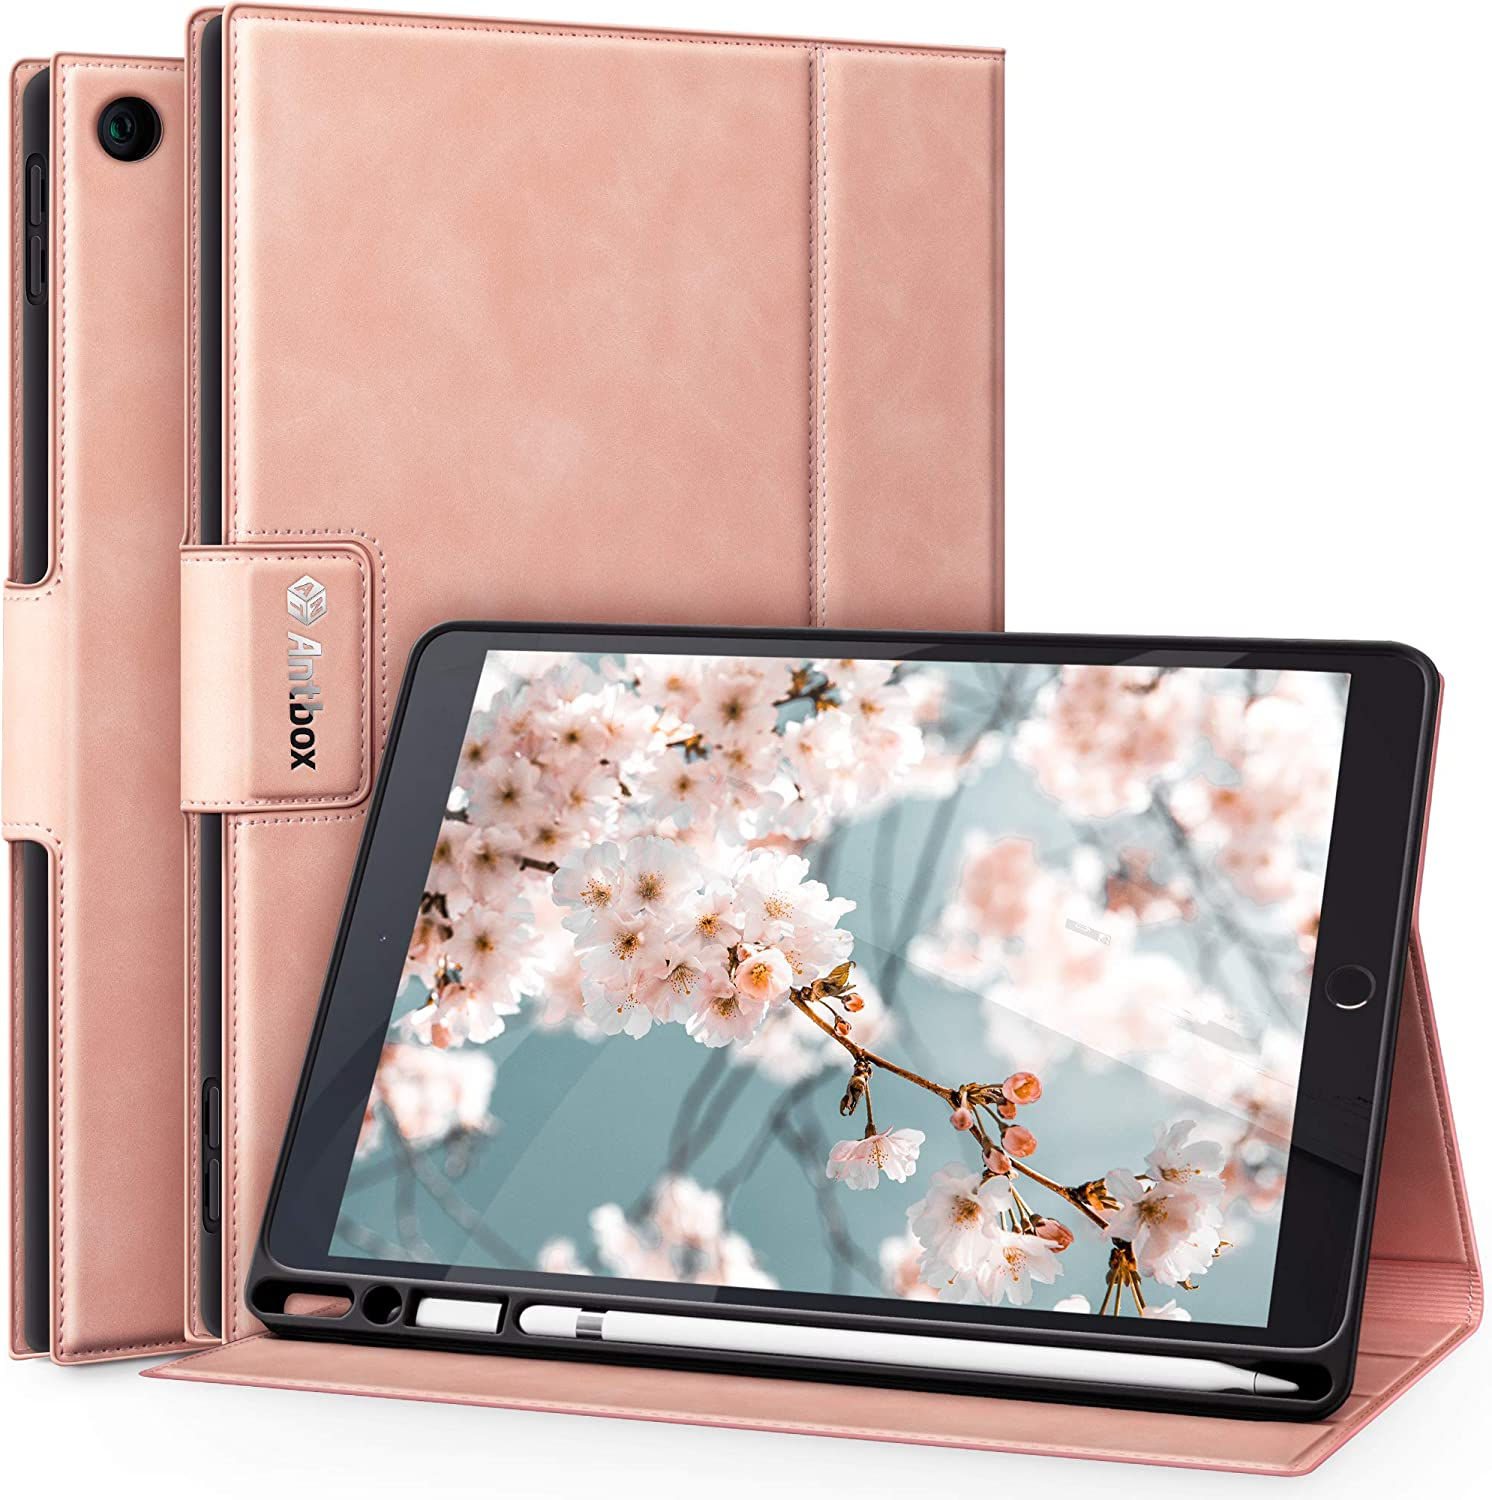 Antbox Case for iPad 8th Generation Pink Case for Girls iPad 7th Generation with Apple Pencil Holder Auto Sleep/Wake Function PU Leather Smart iPad 10.2'' Case(Pink)